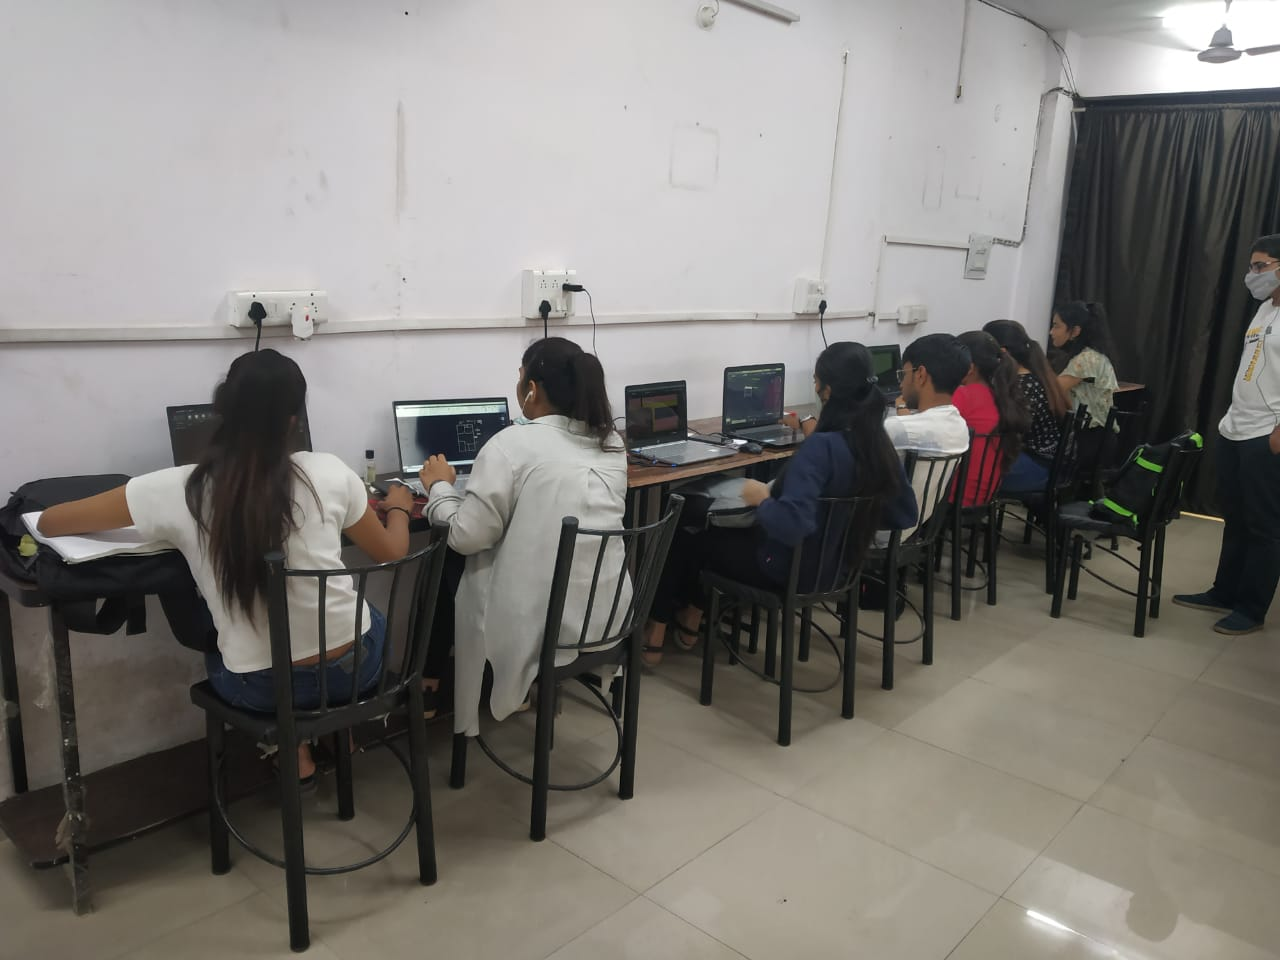 design-centre-institute-of-creativity-and-innovation-indore-chhindwara-gallery (29)